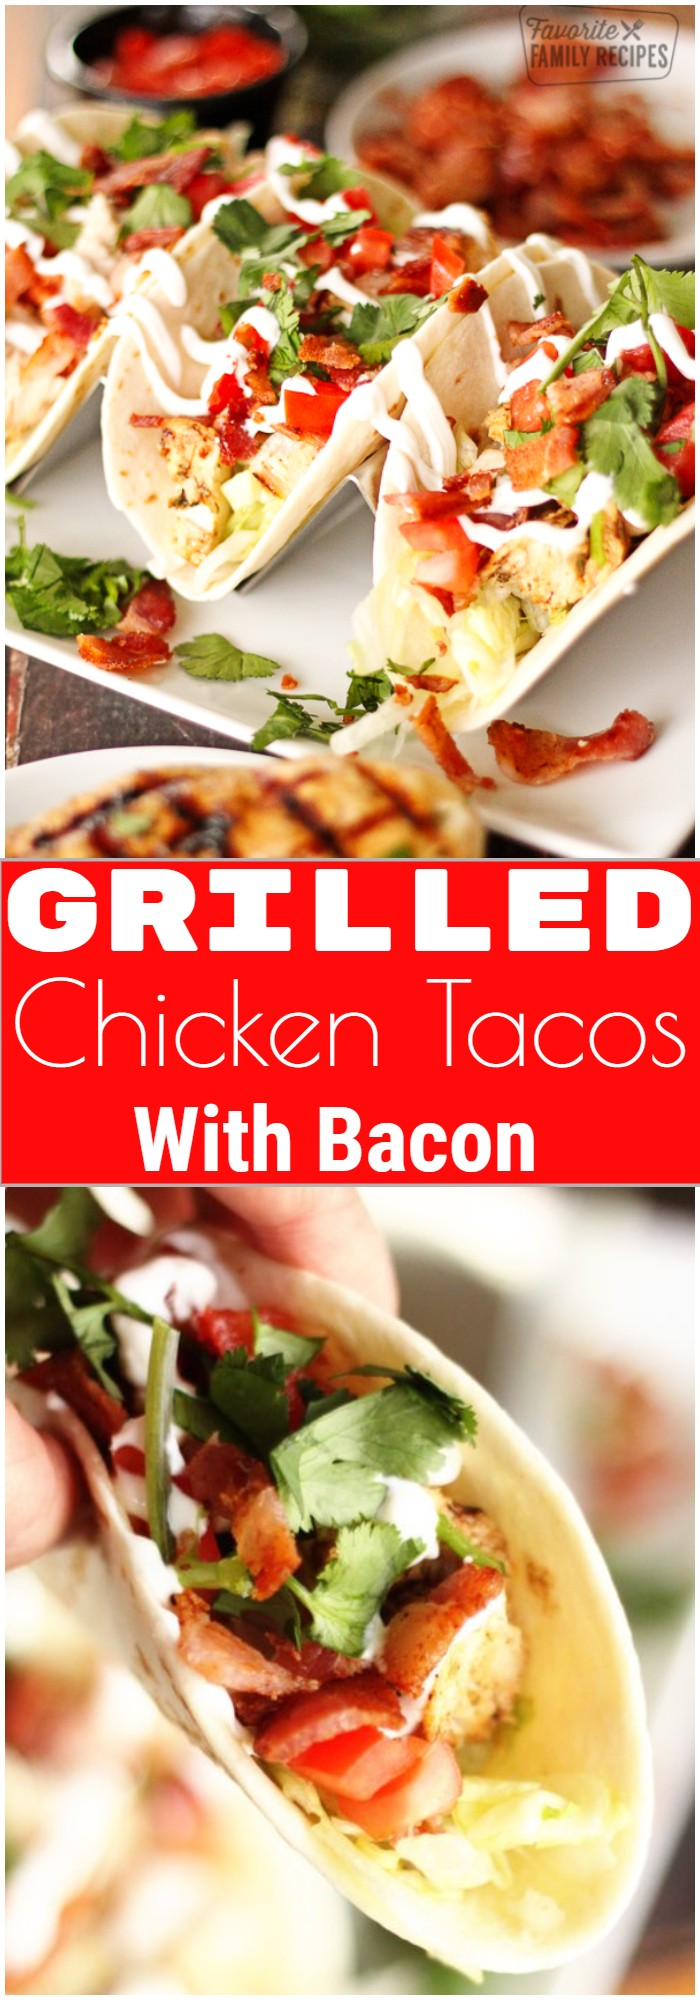 Grilled Chicken Tacos With Bacon